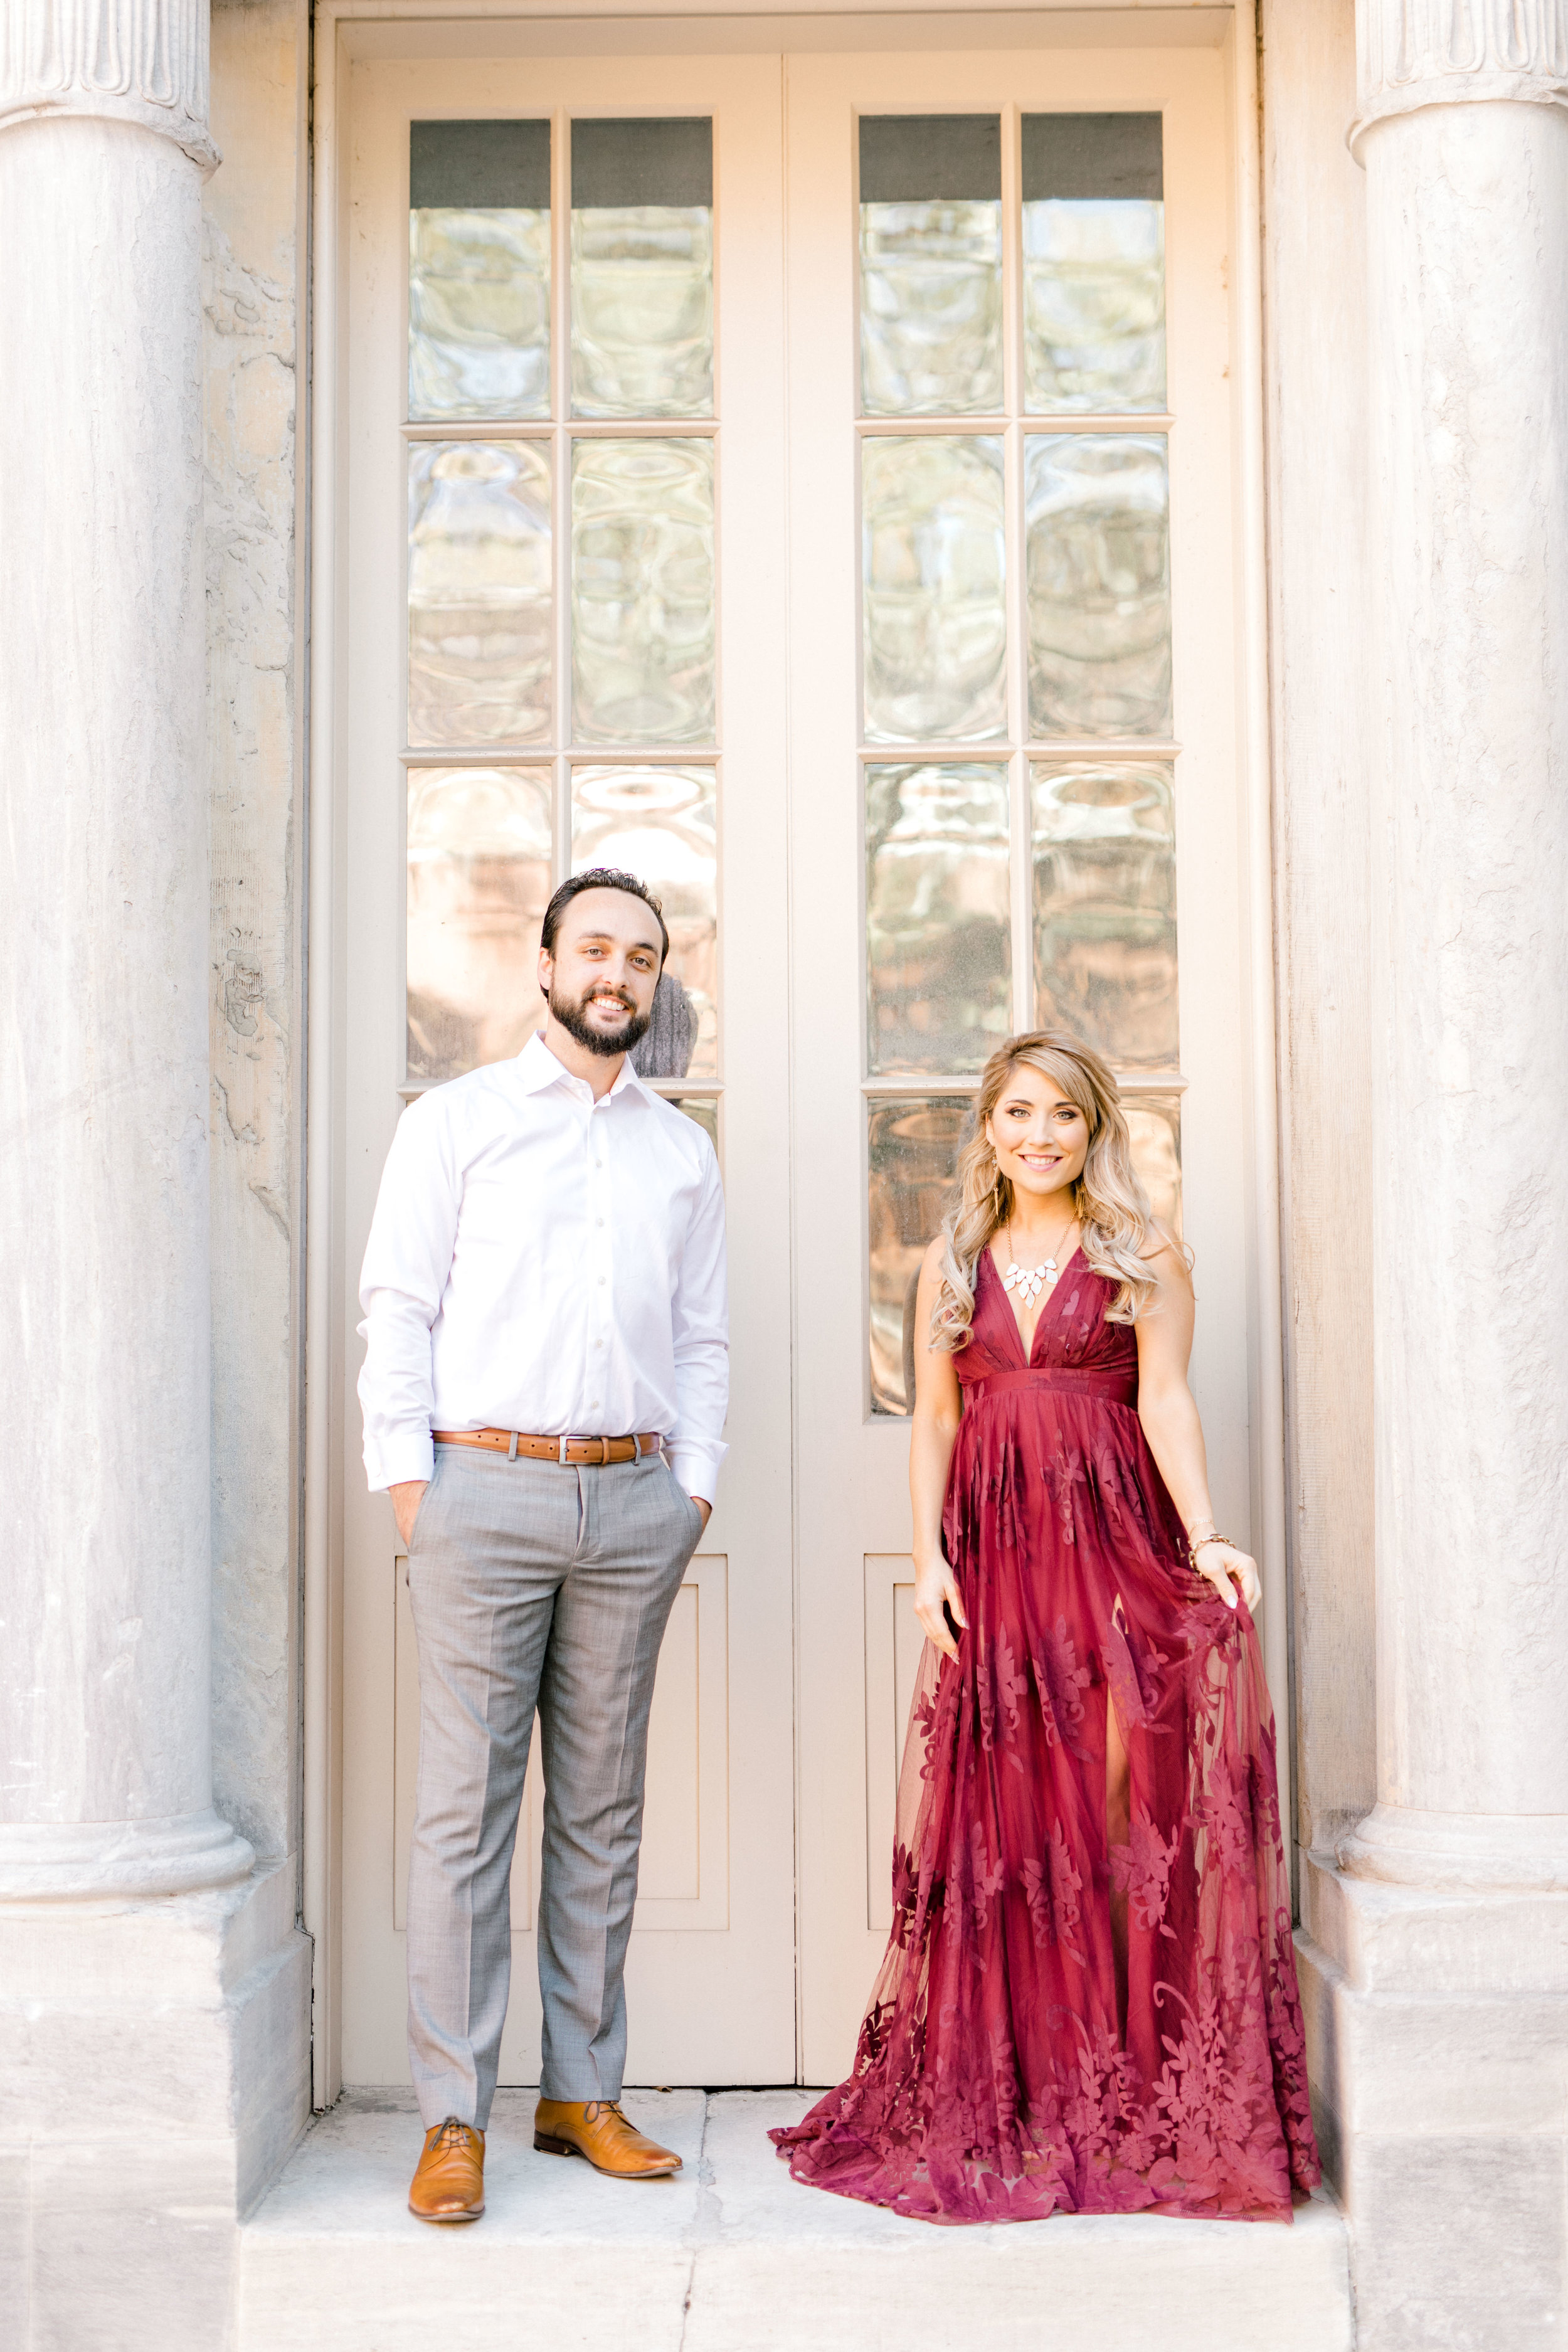 We adored the romantic styling for Nikki and Dale's bright fall engagement session in Old City, Philadelphia.